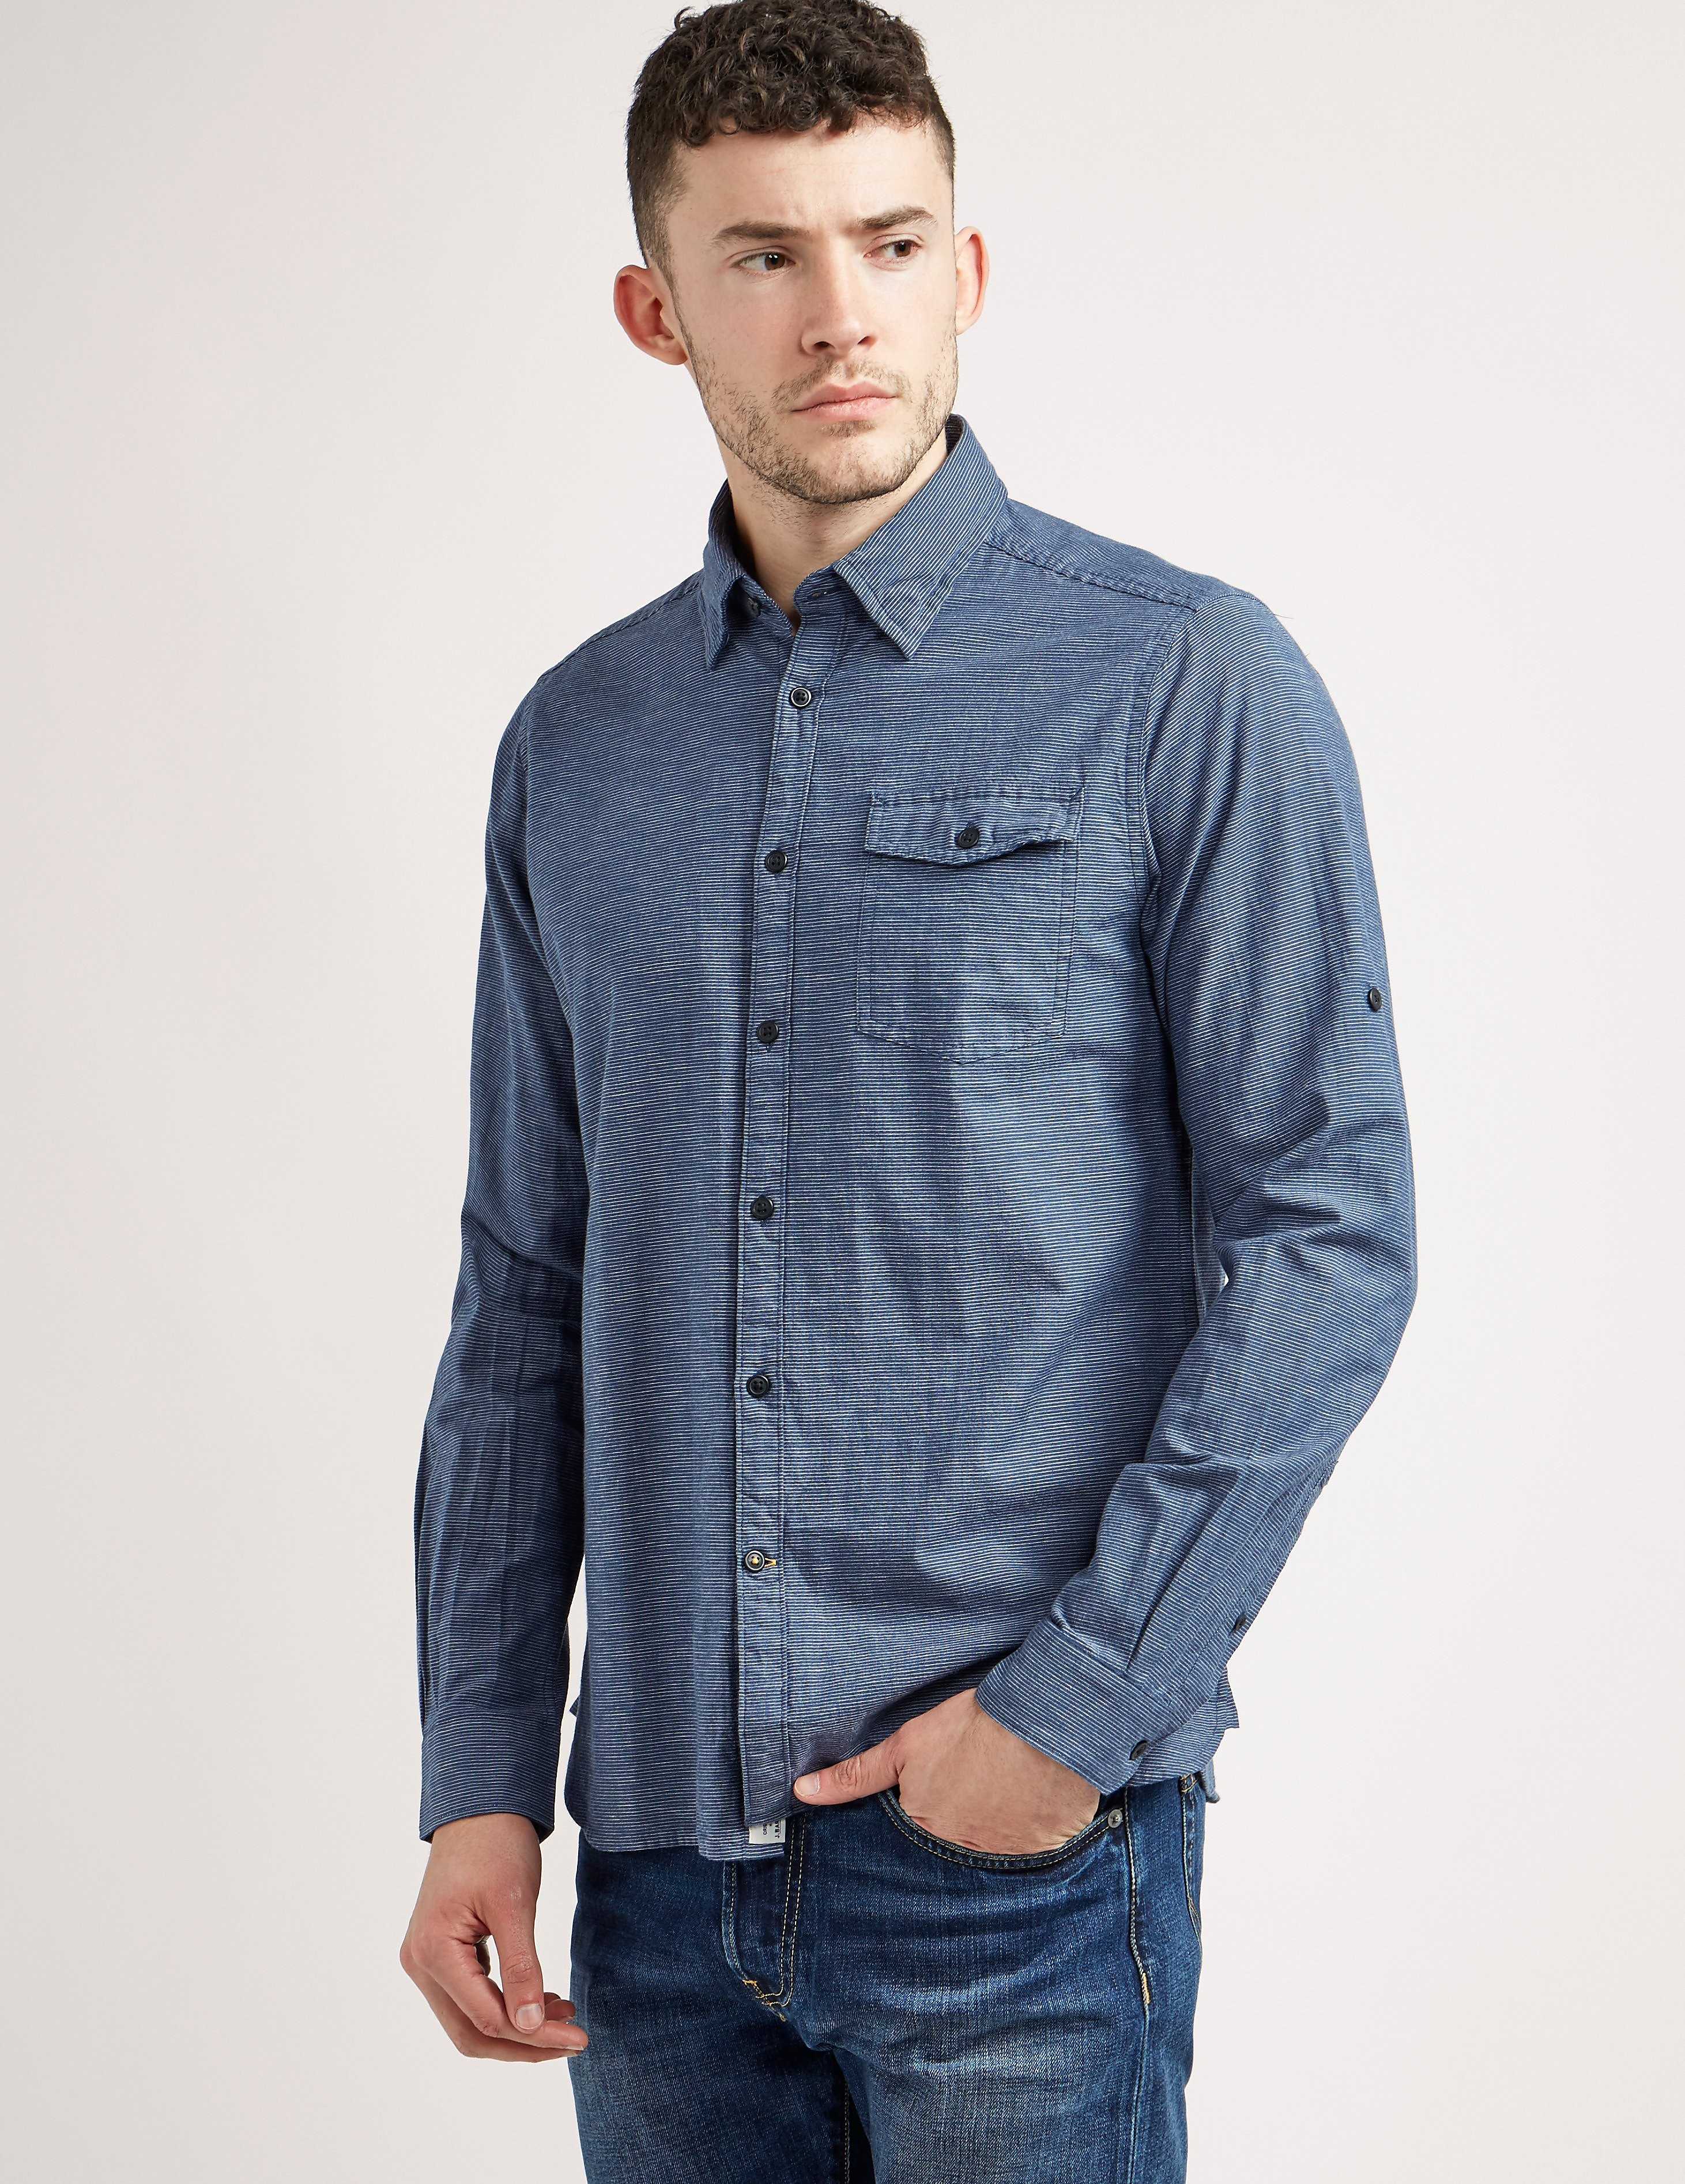 Barbour Brock Tailored Fit Shirt